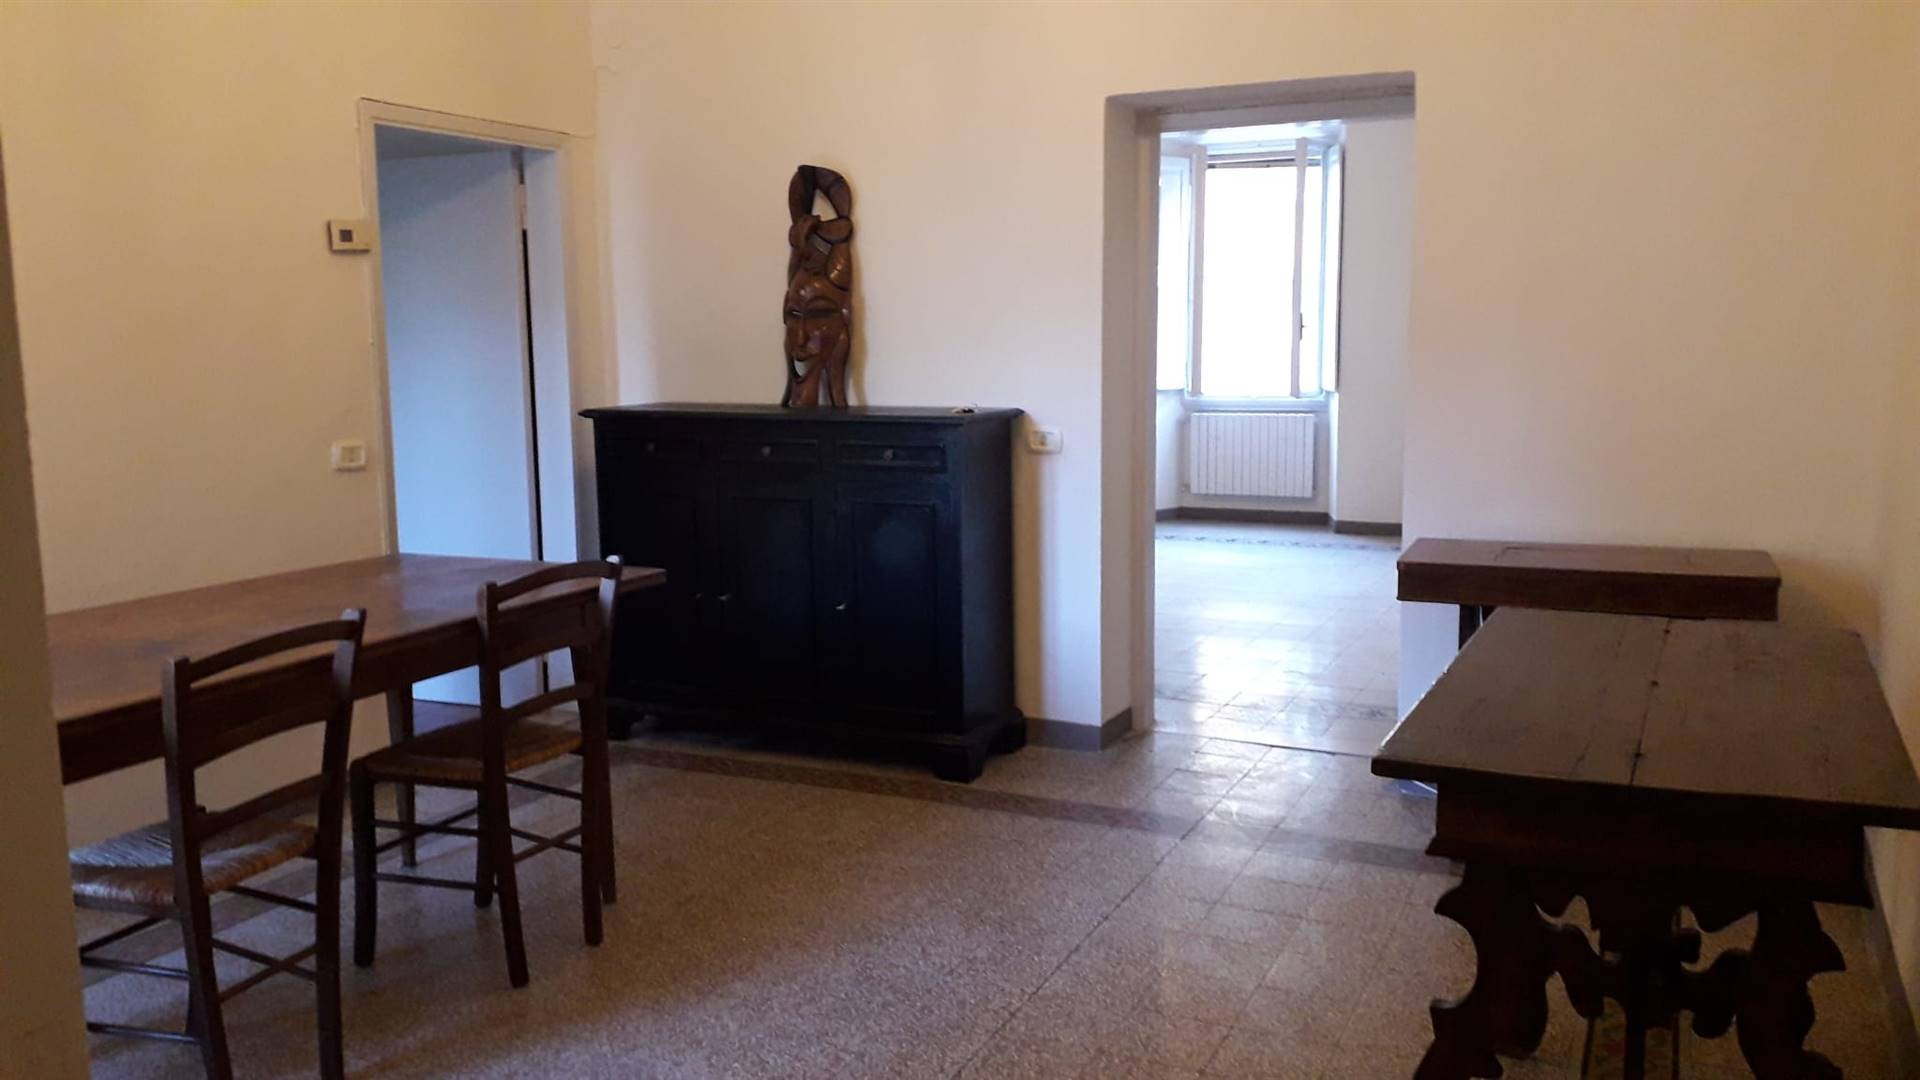 PIAZZA D'AZEGLIO, FIRENZE, Apartment for rent of 60 Sq. mt., Habitable, Heating Individual heating system, Energetic class: F, Epi: 106,76 kwh/m2